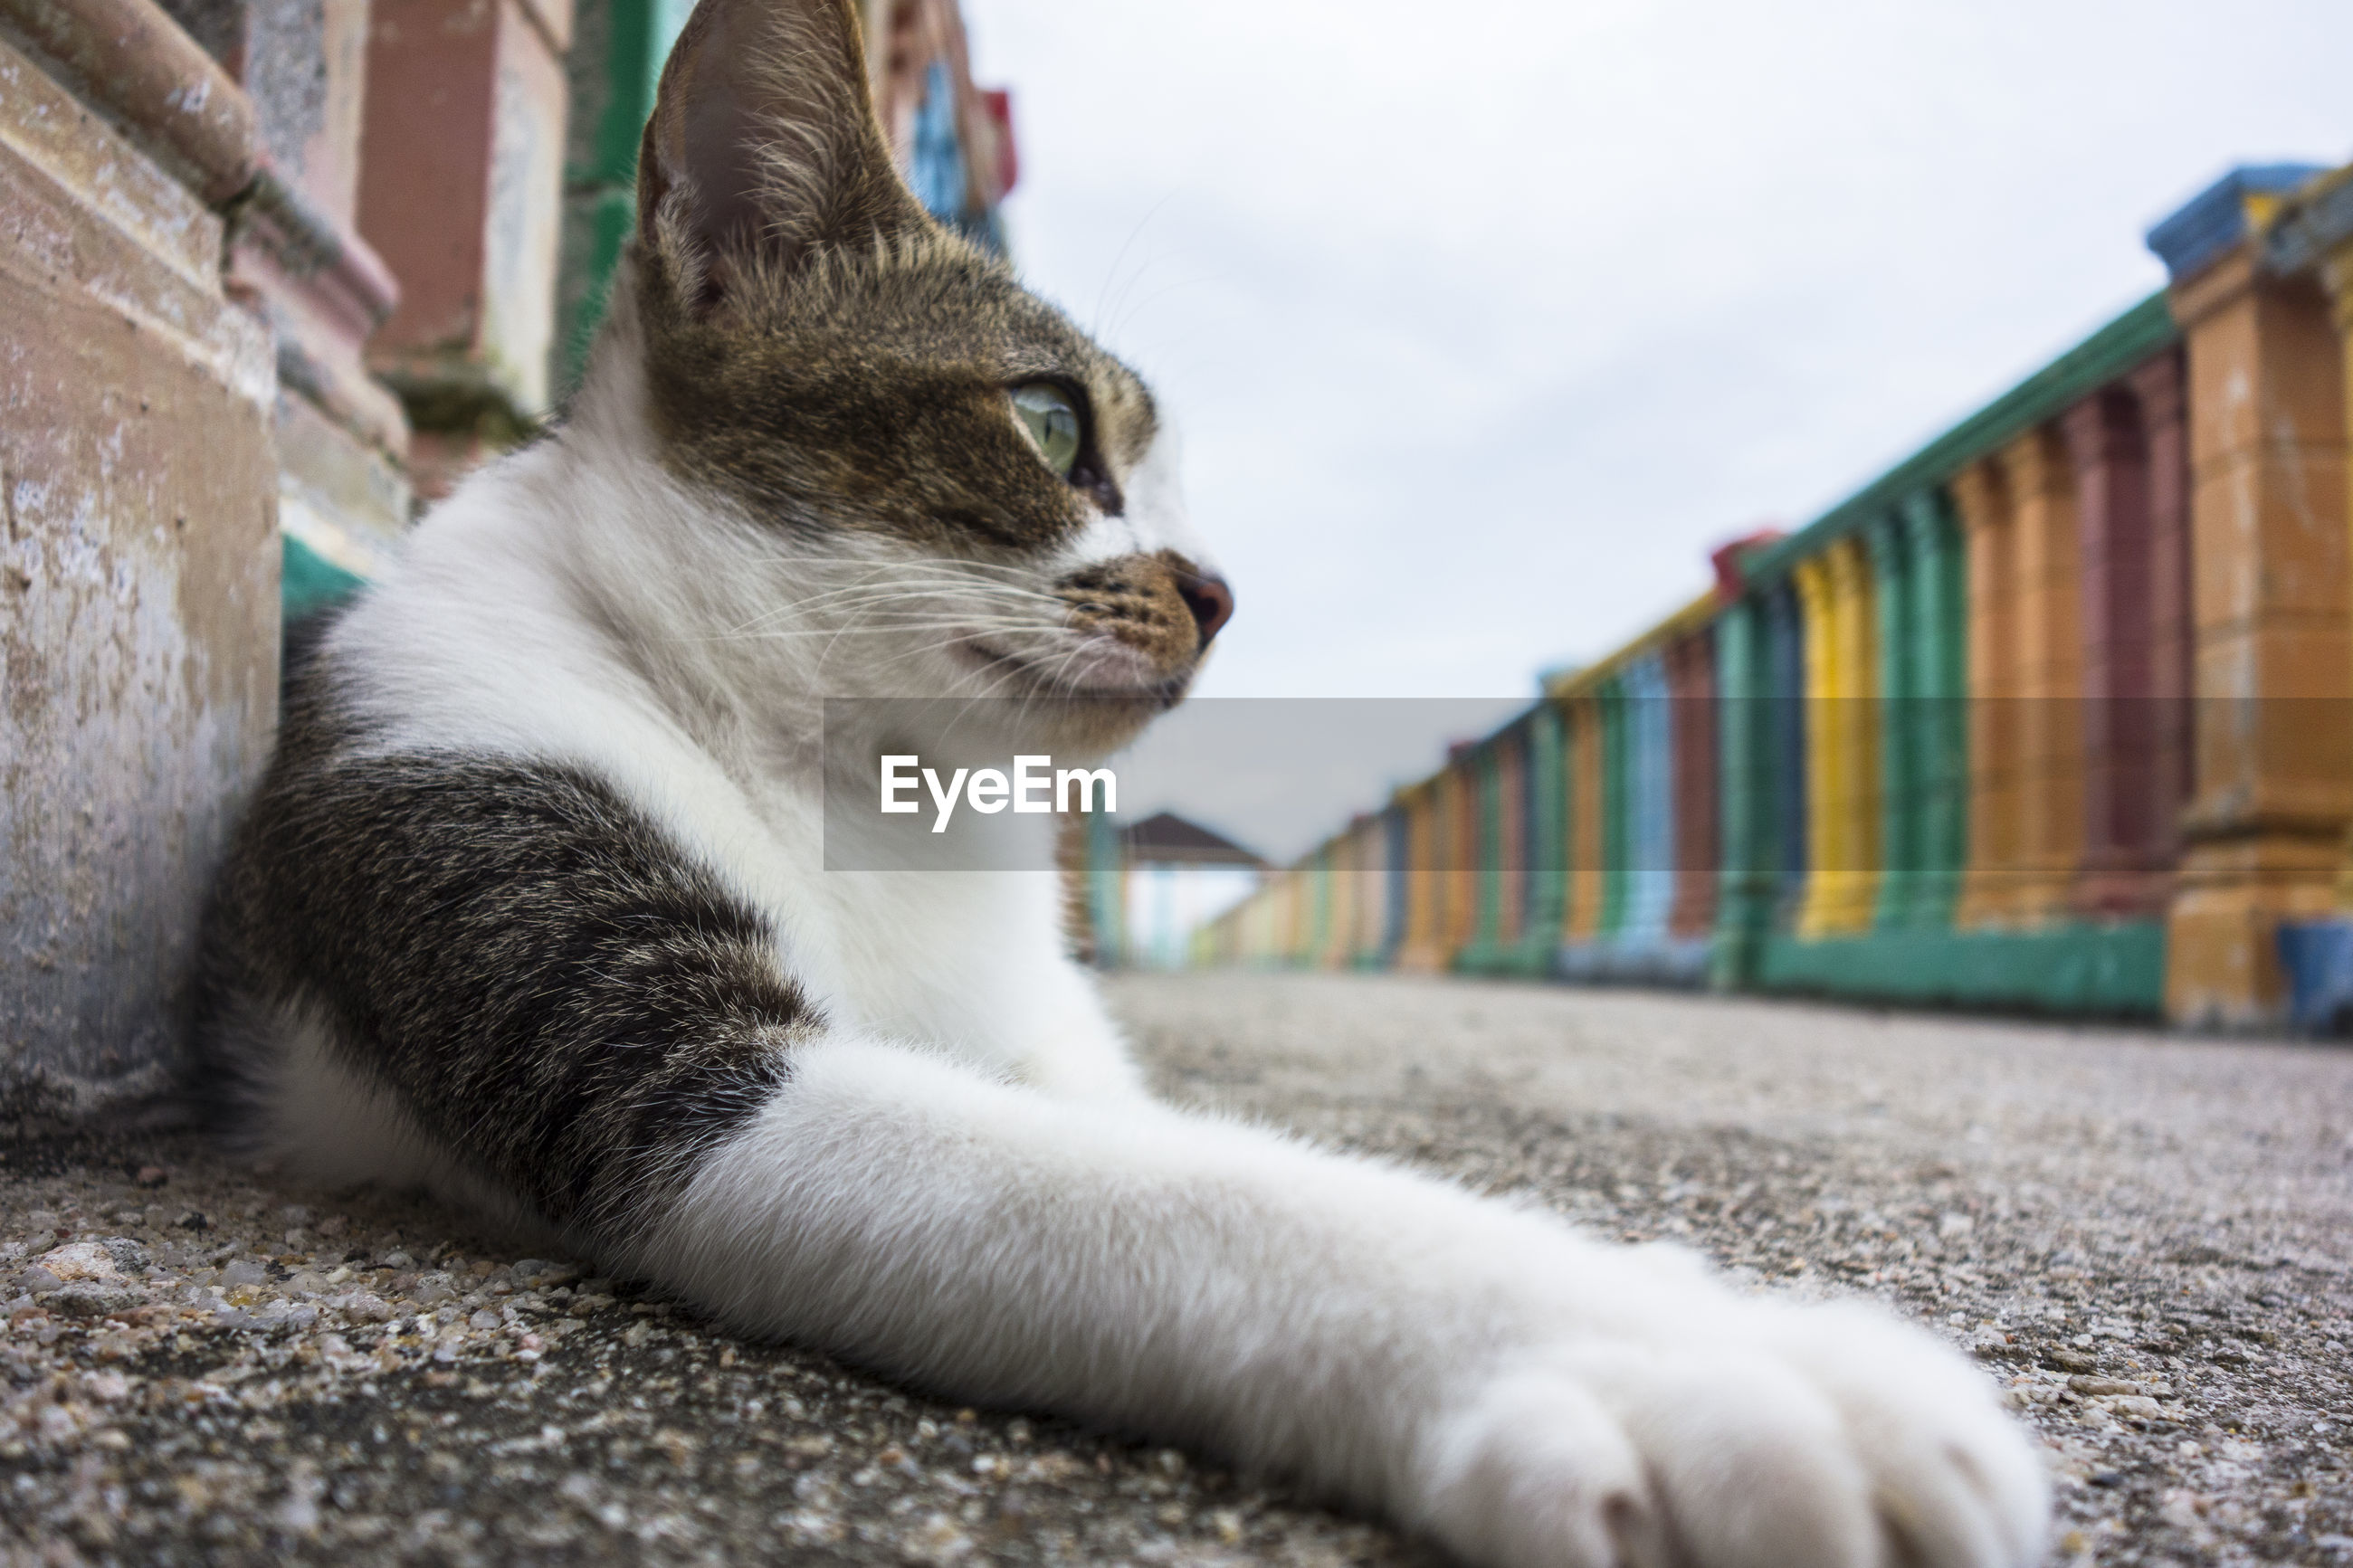 Close-up of stray cat resting on street against sky